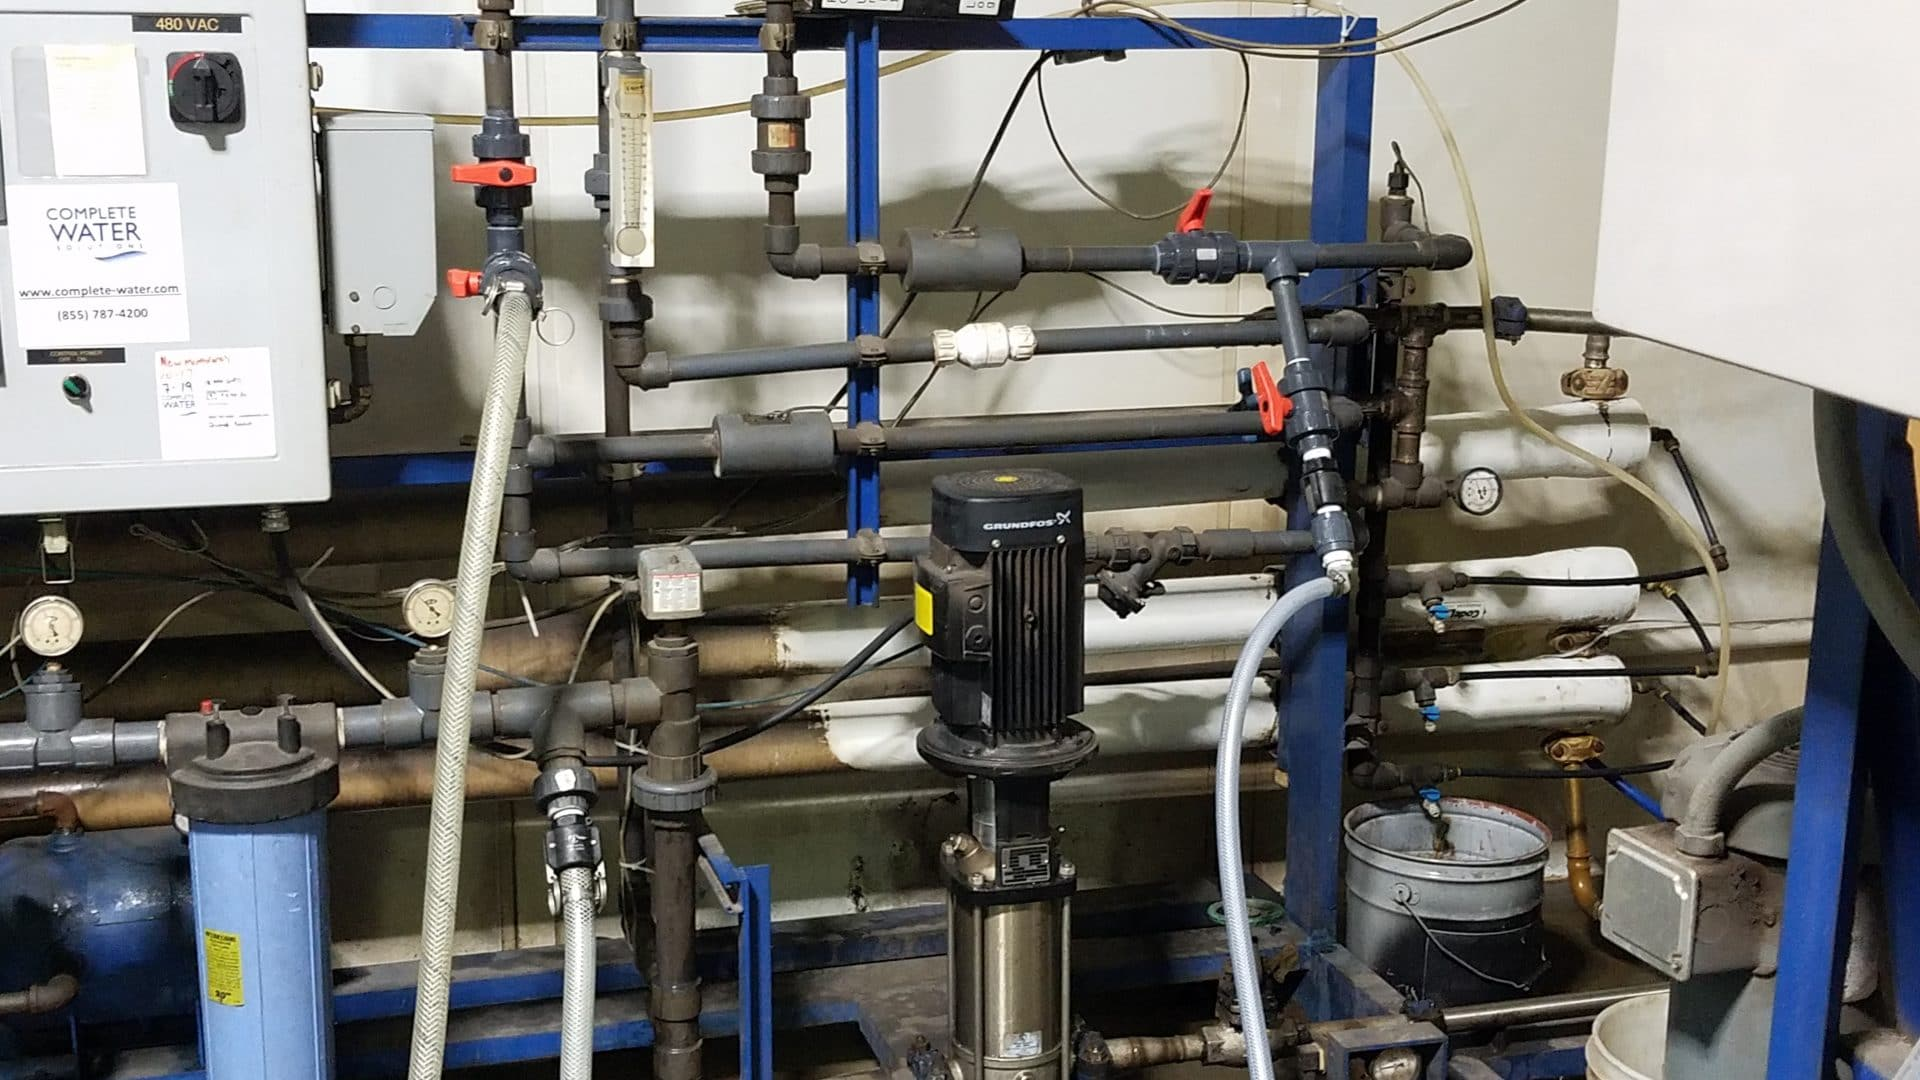 clean in place system, complete water solutions, reverse osmosis system service